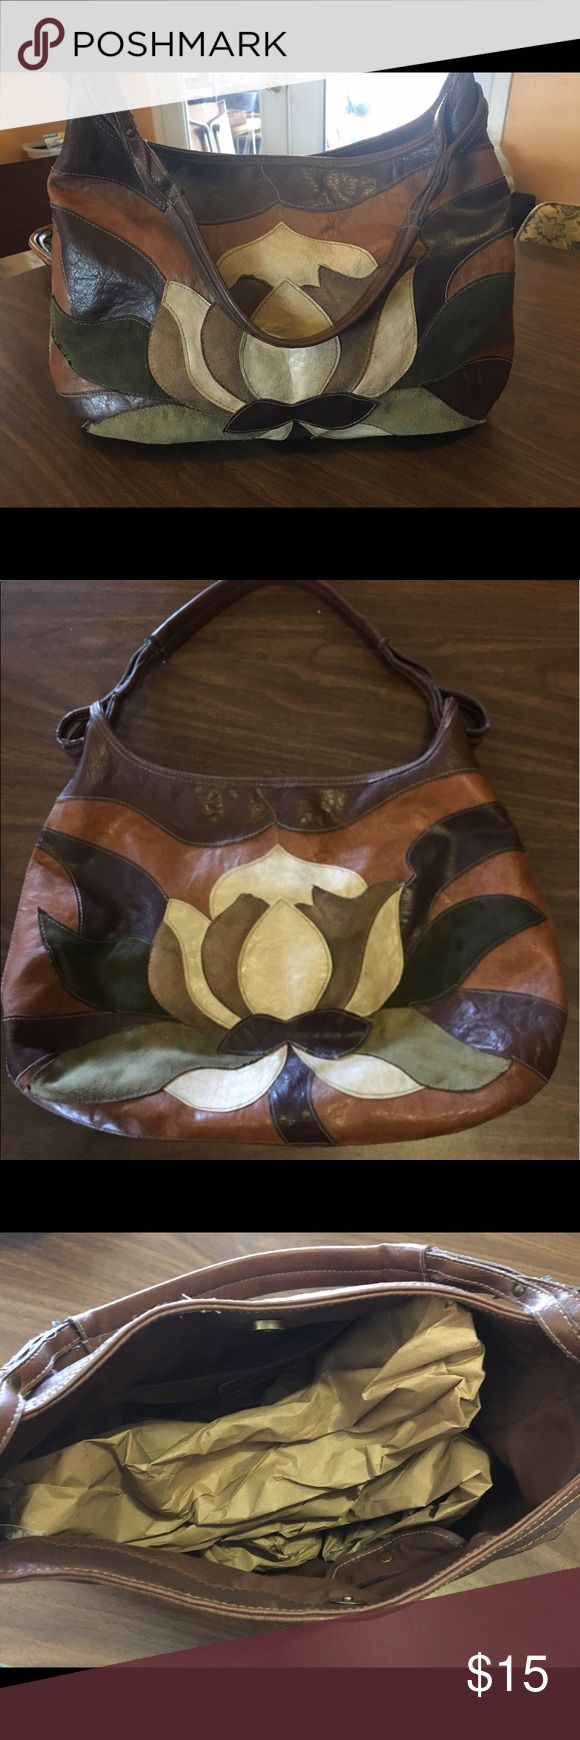 Canyon River Blues faux leather hobo bag Cool faux leather hobo bag - multi-color design on front.  Back is all chocolate brown.  Small stain but other than that in great condition.  Shoulder strap is connected through loop on both sides Canyon River Blues Bags Shoulder Bags